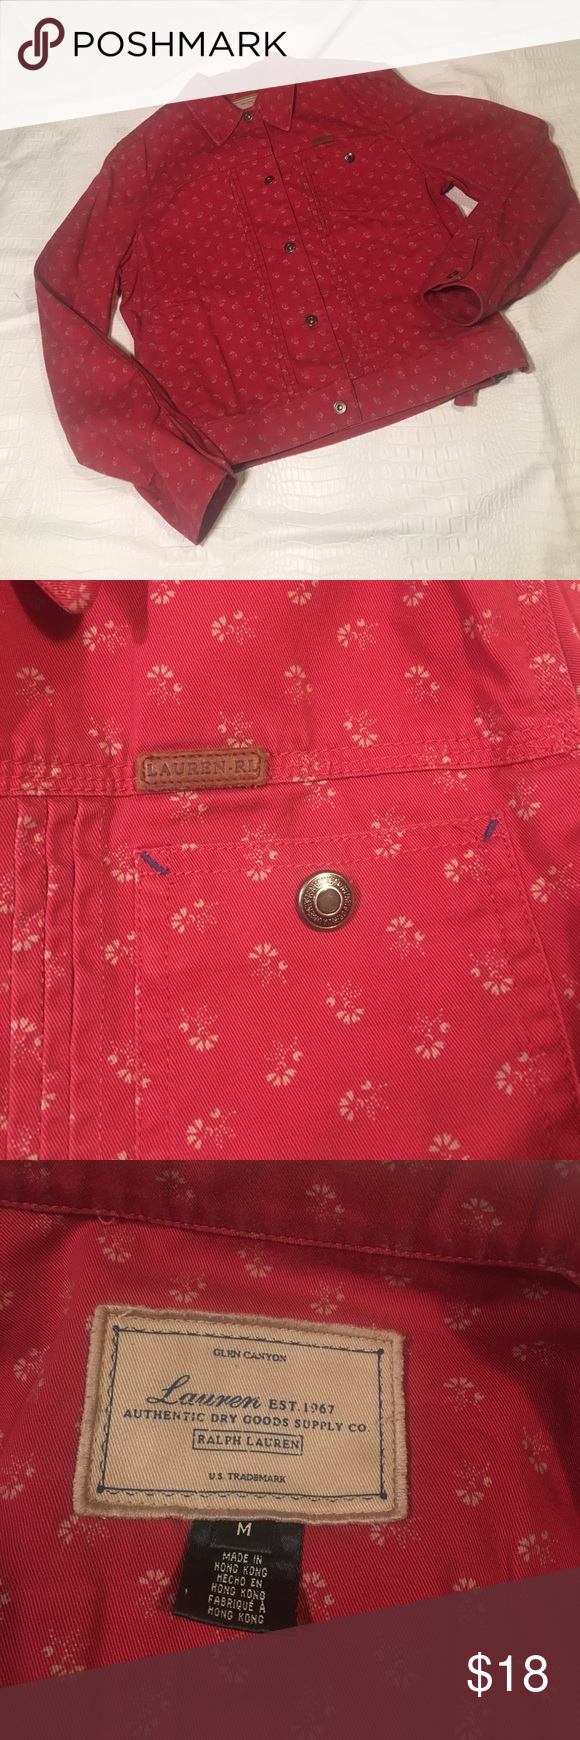 Lauren by Ralph Lauren Jacket Lauren by Ralph Lauren Red with Beige Colored Floral Print Size Medium Jean Jacket Lauren Ralph Lauren Jackets & Coats Jean Jackets